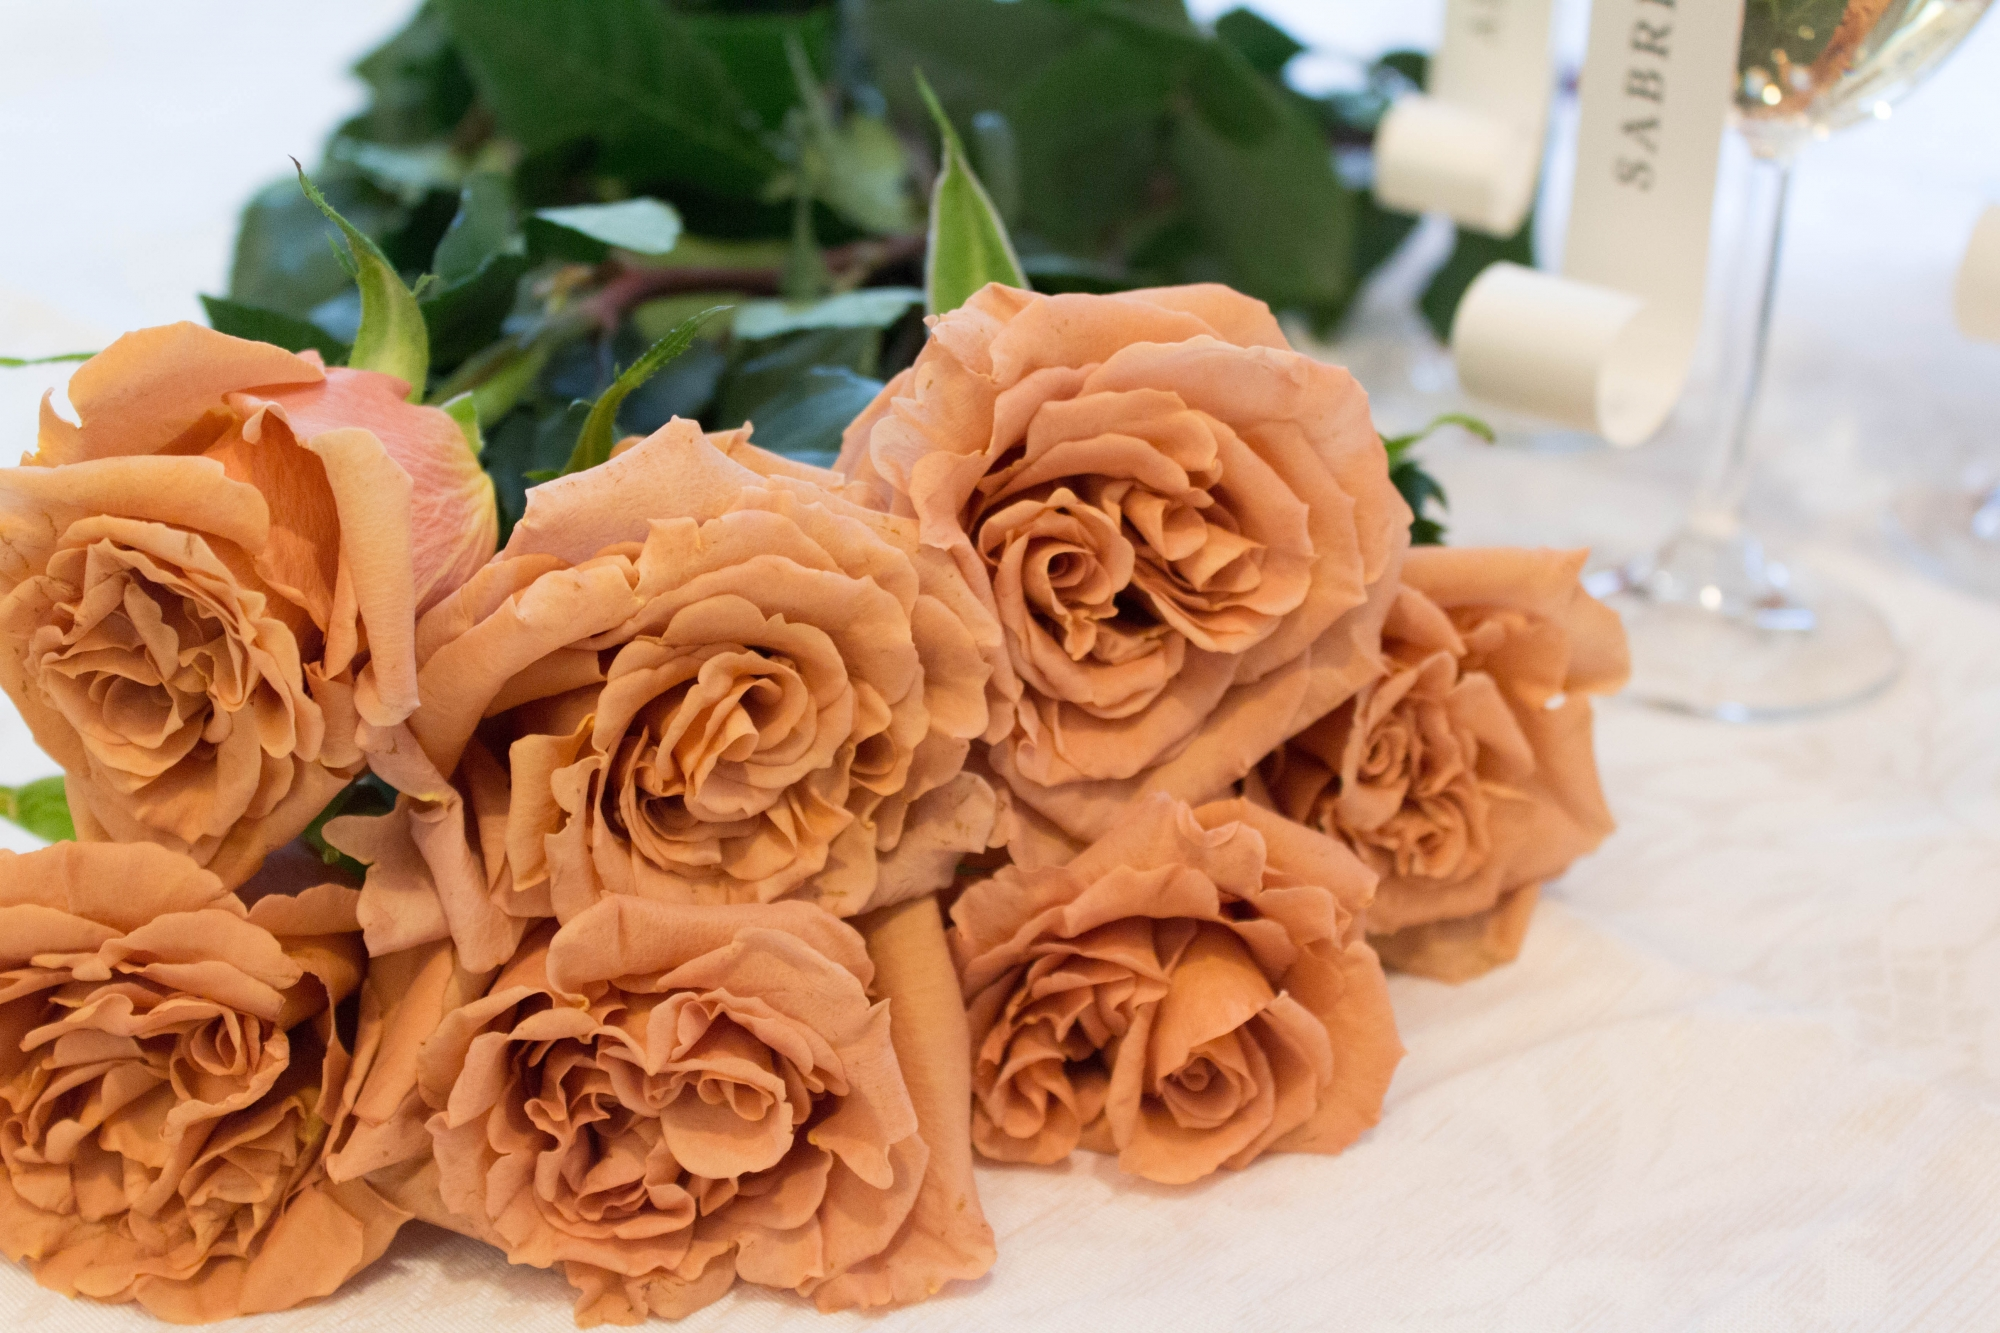 Toffee Roses - FiftyFlowers